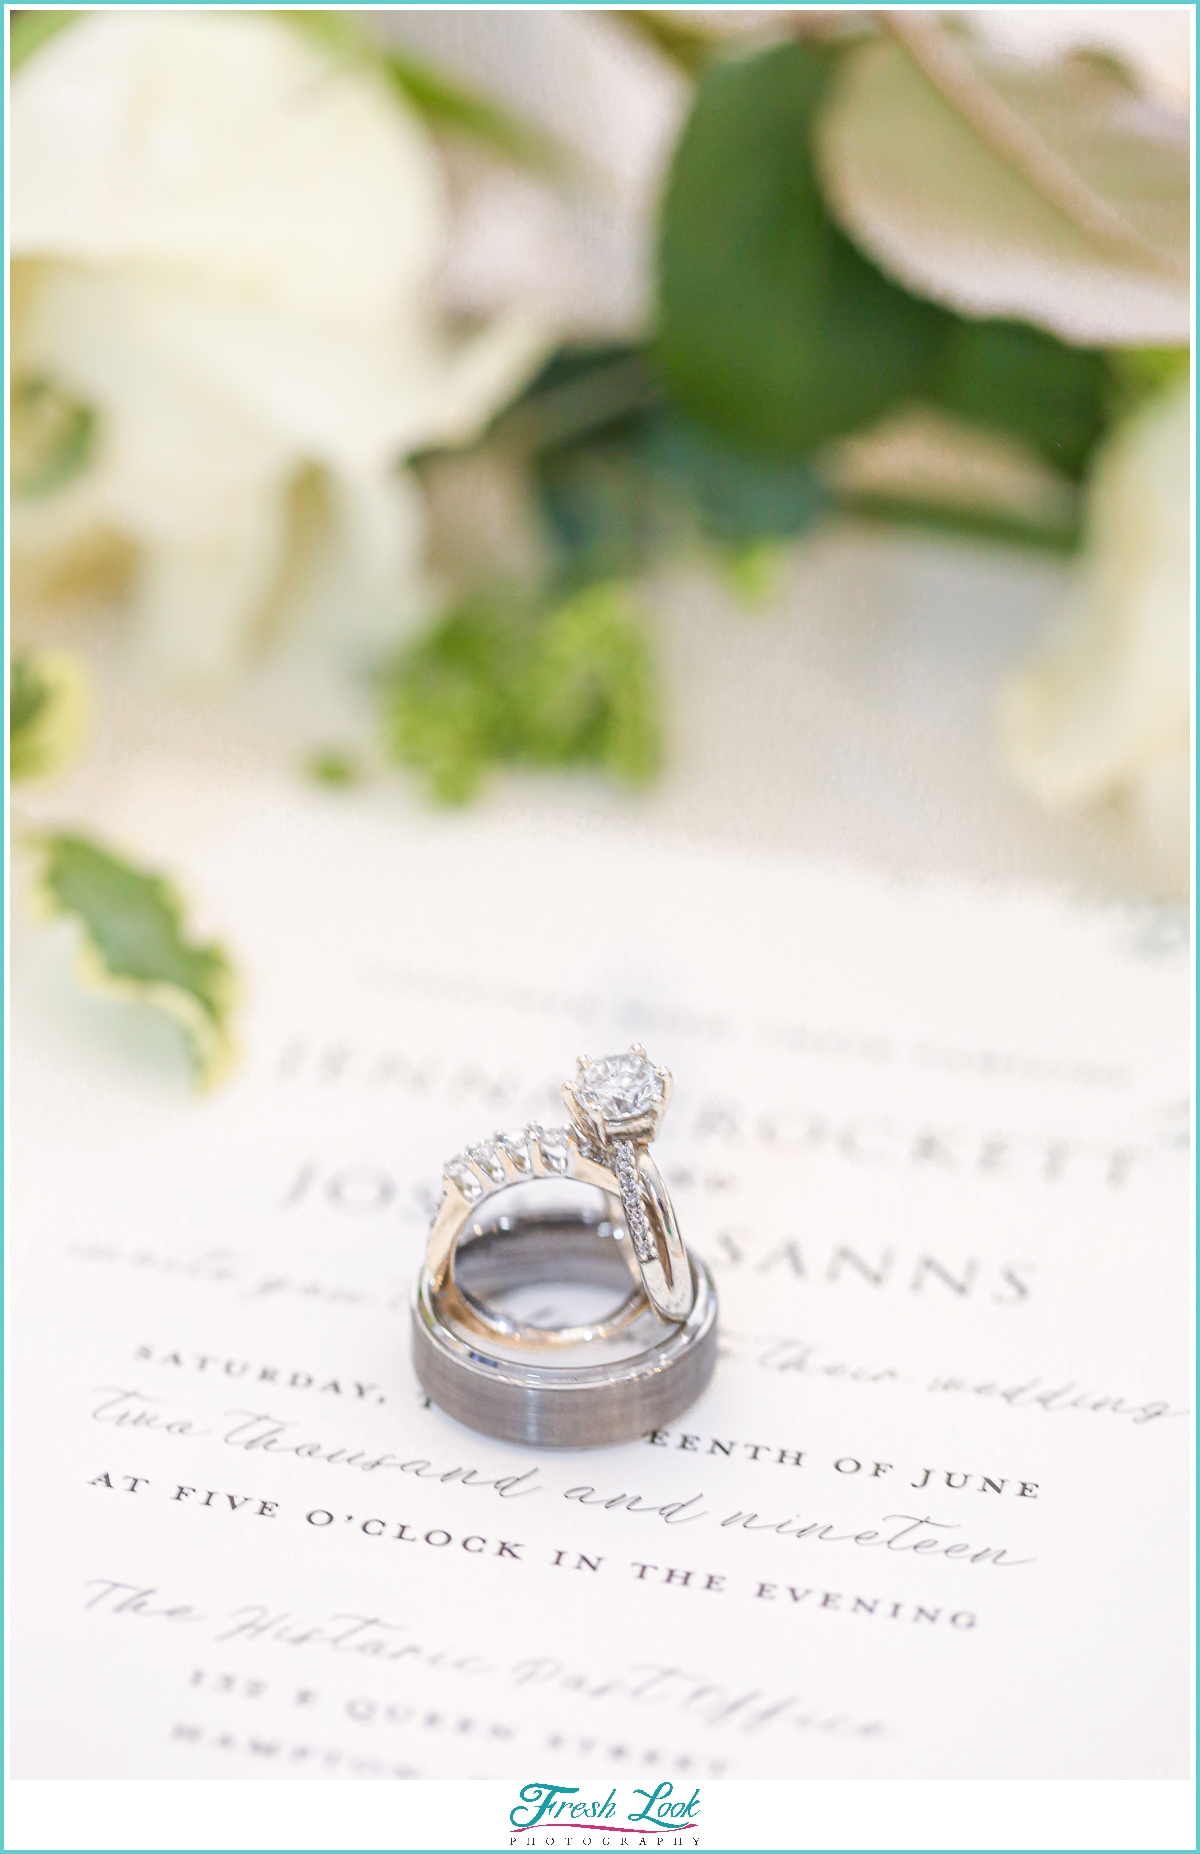 engagement ring and wedding stationery